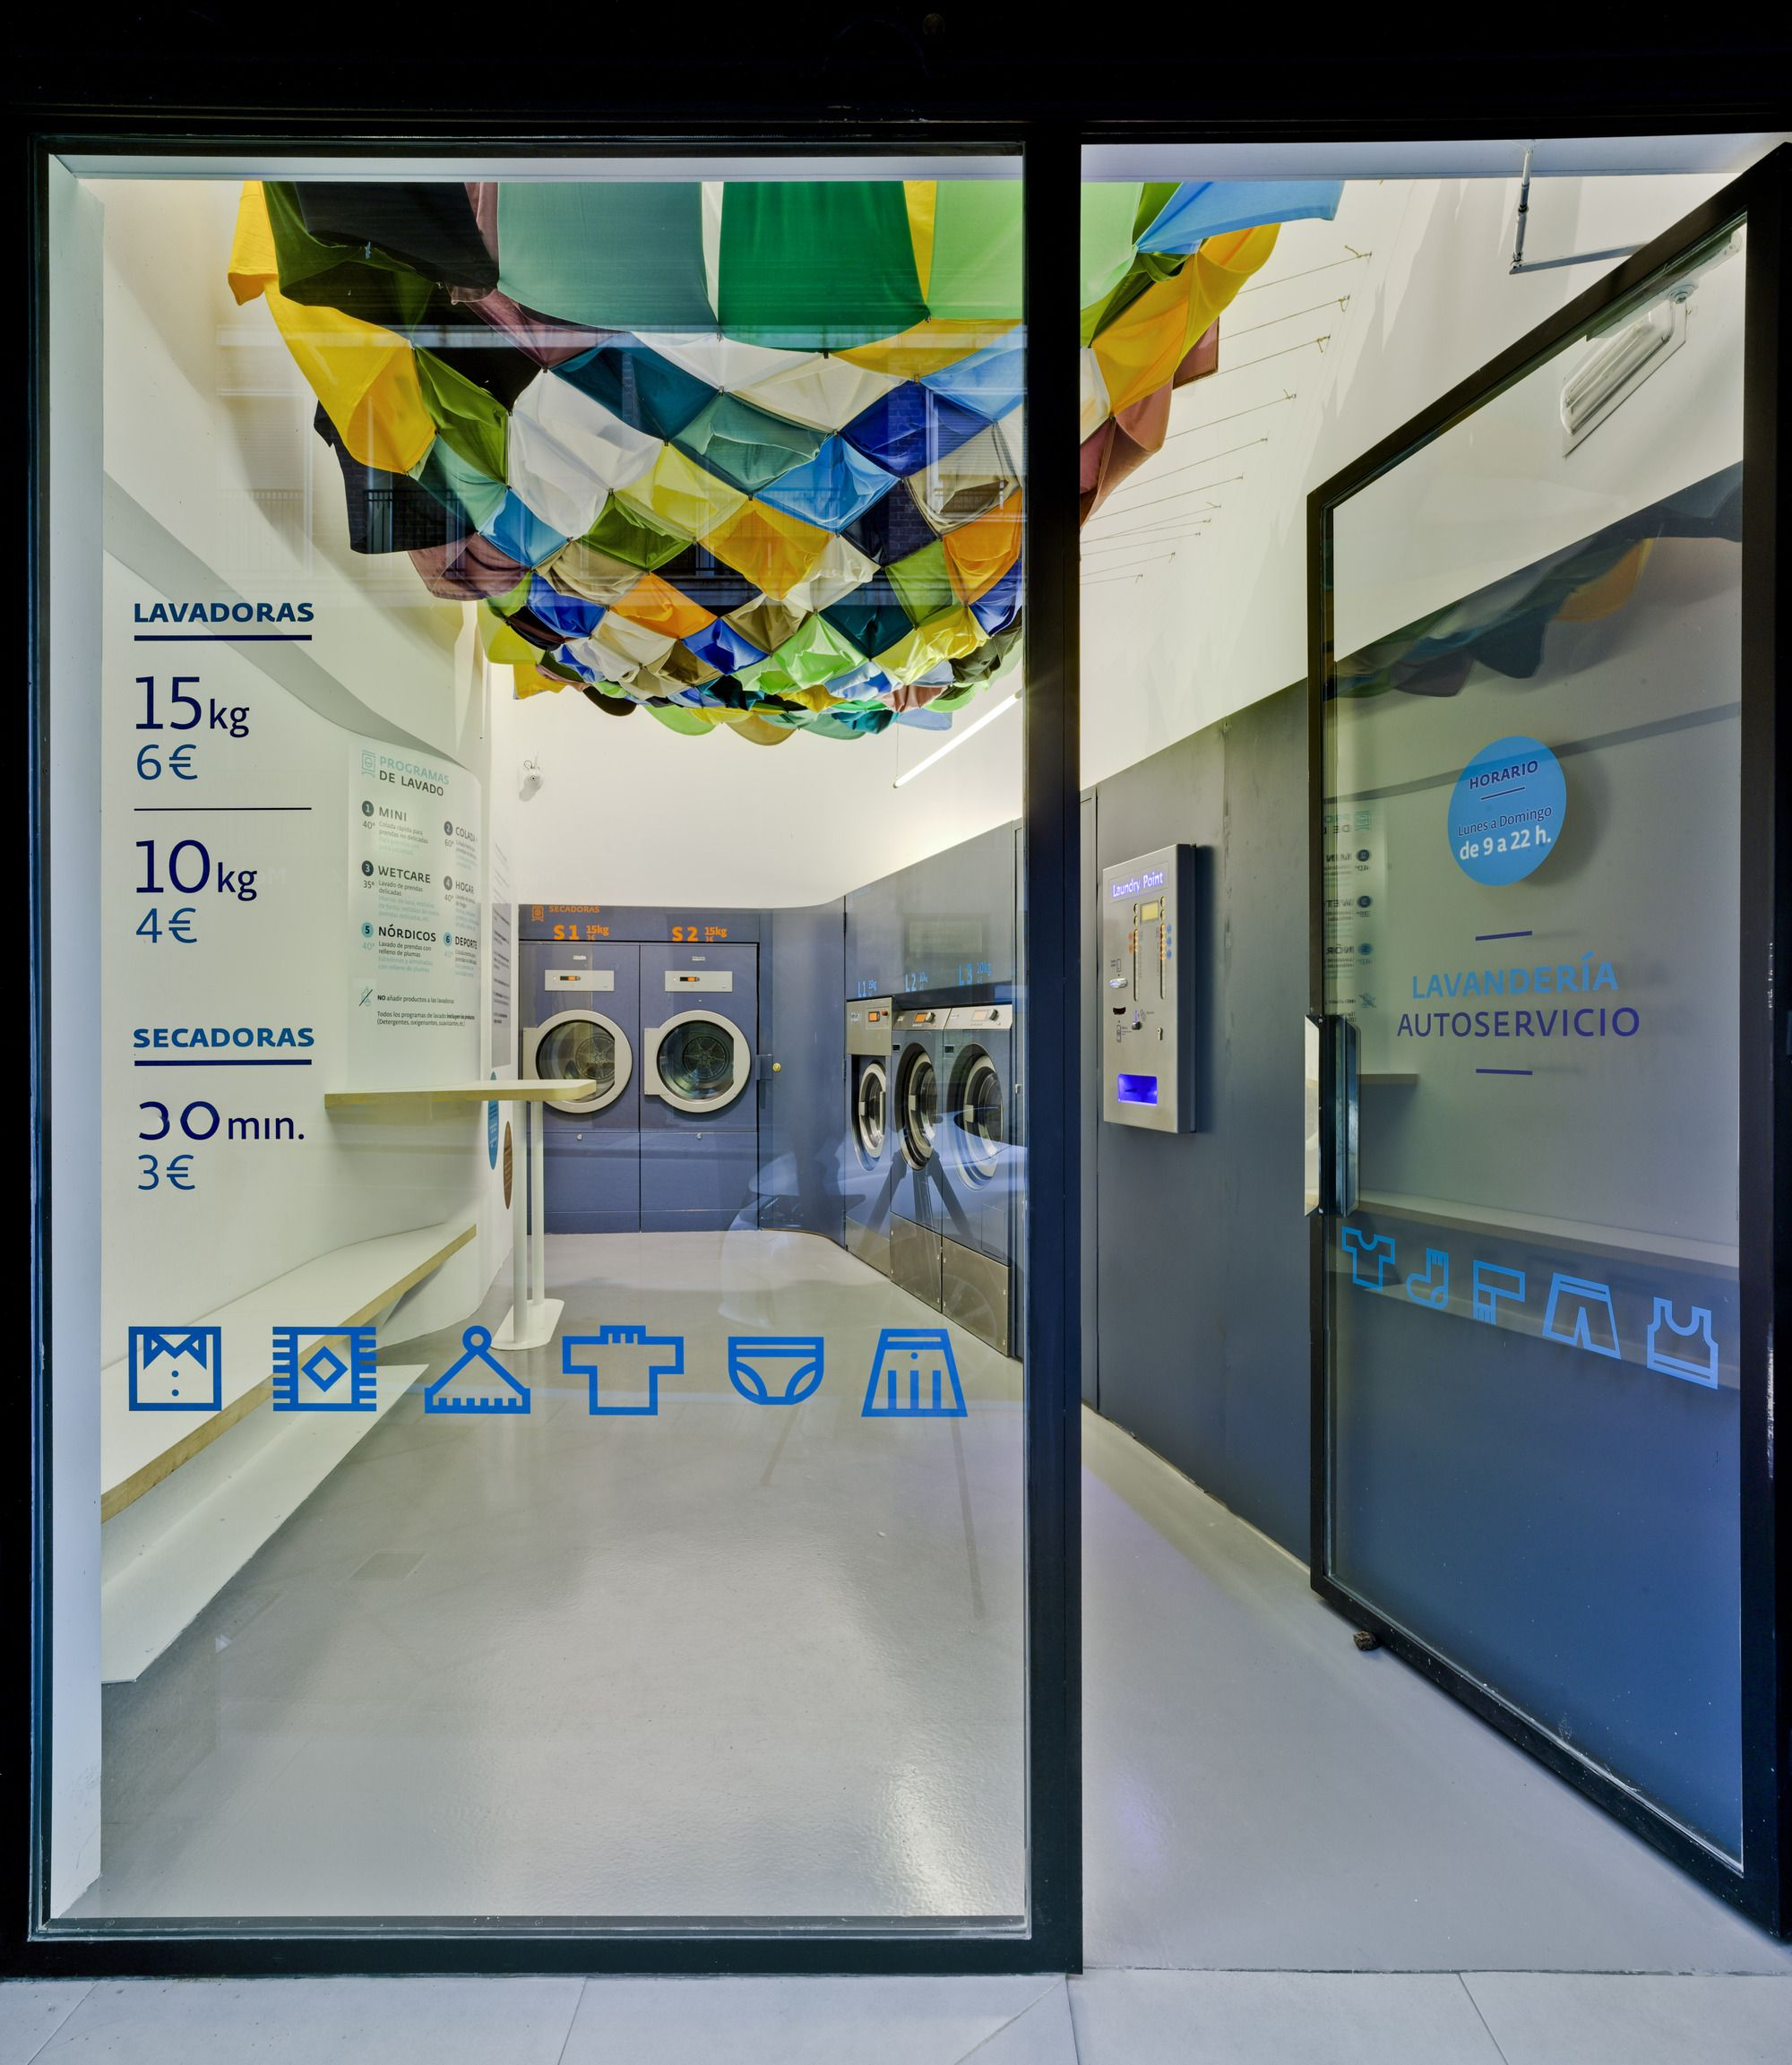 El Tendedero Antonio Macia A D Laundry Shop Laundry Design